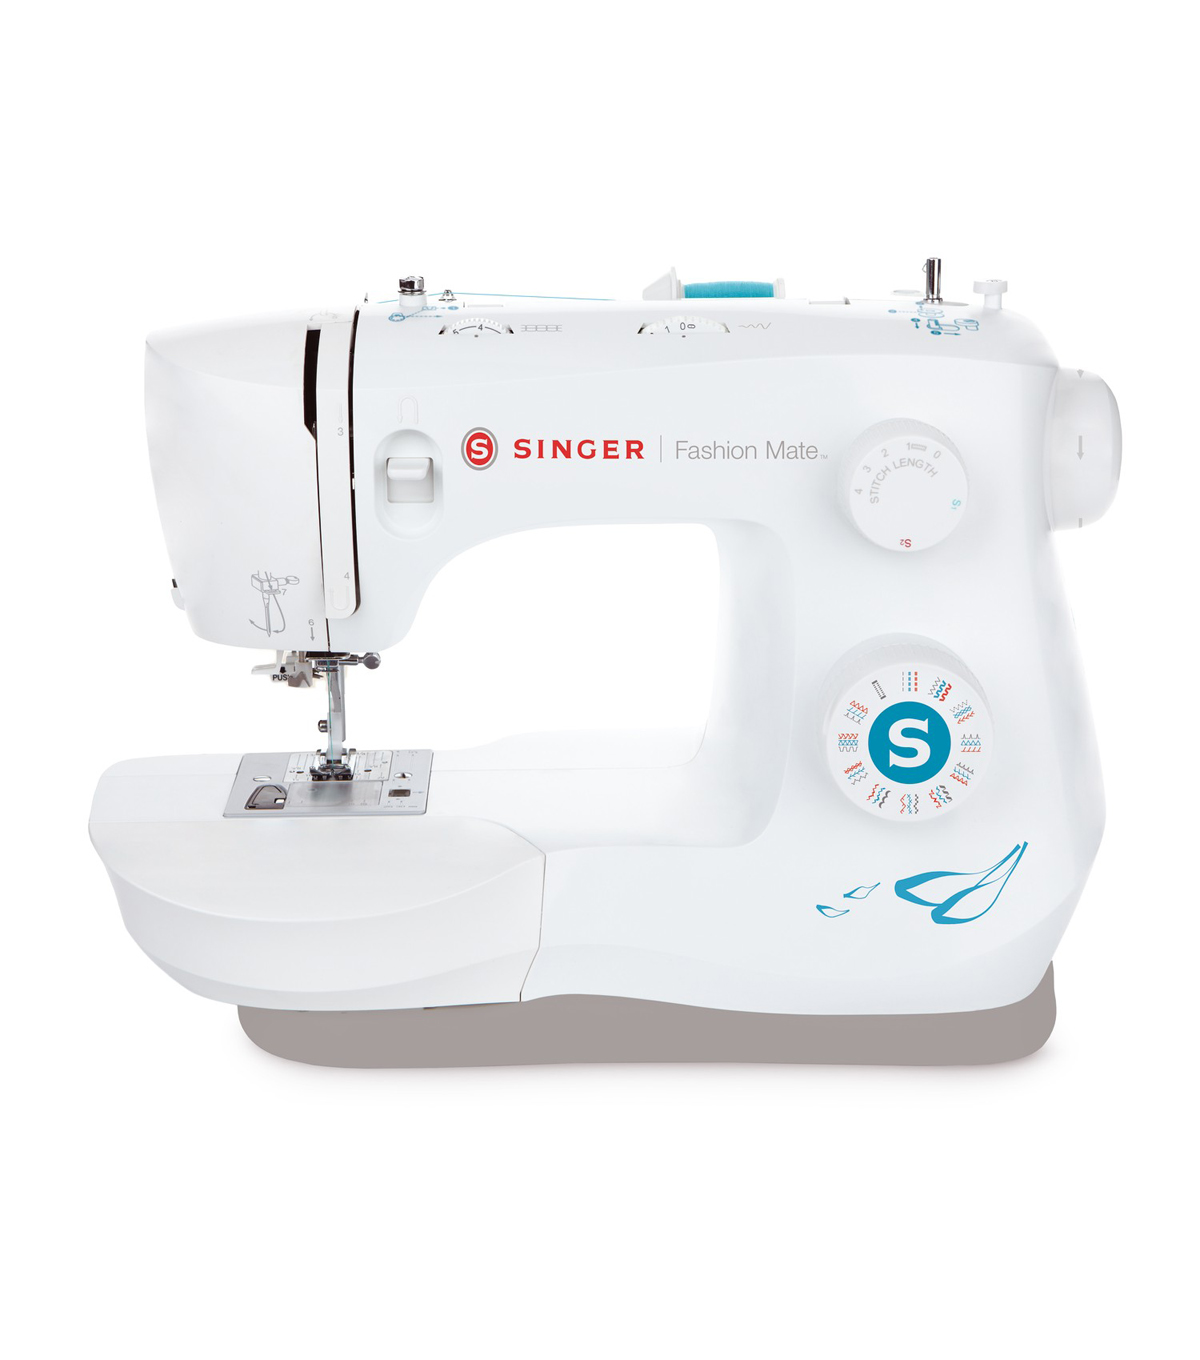 Singer® 3342 Fashion Mate